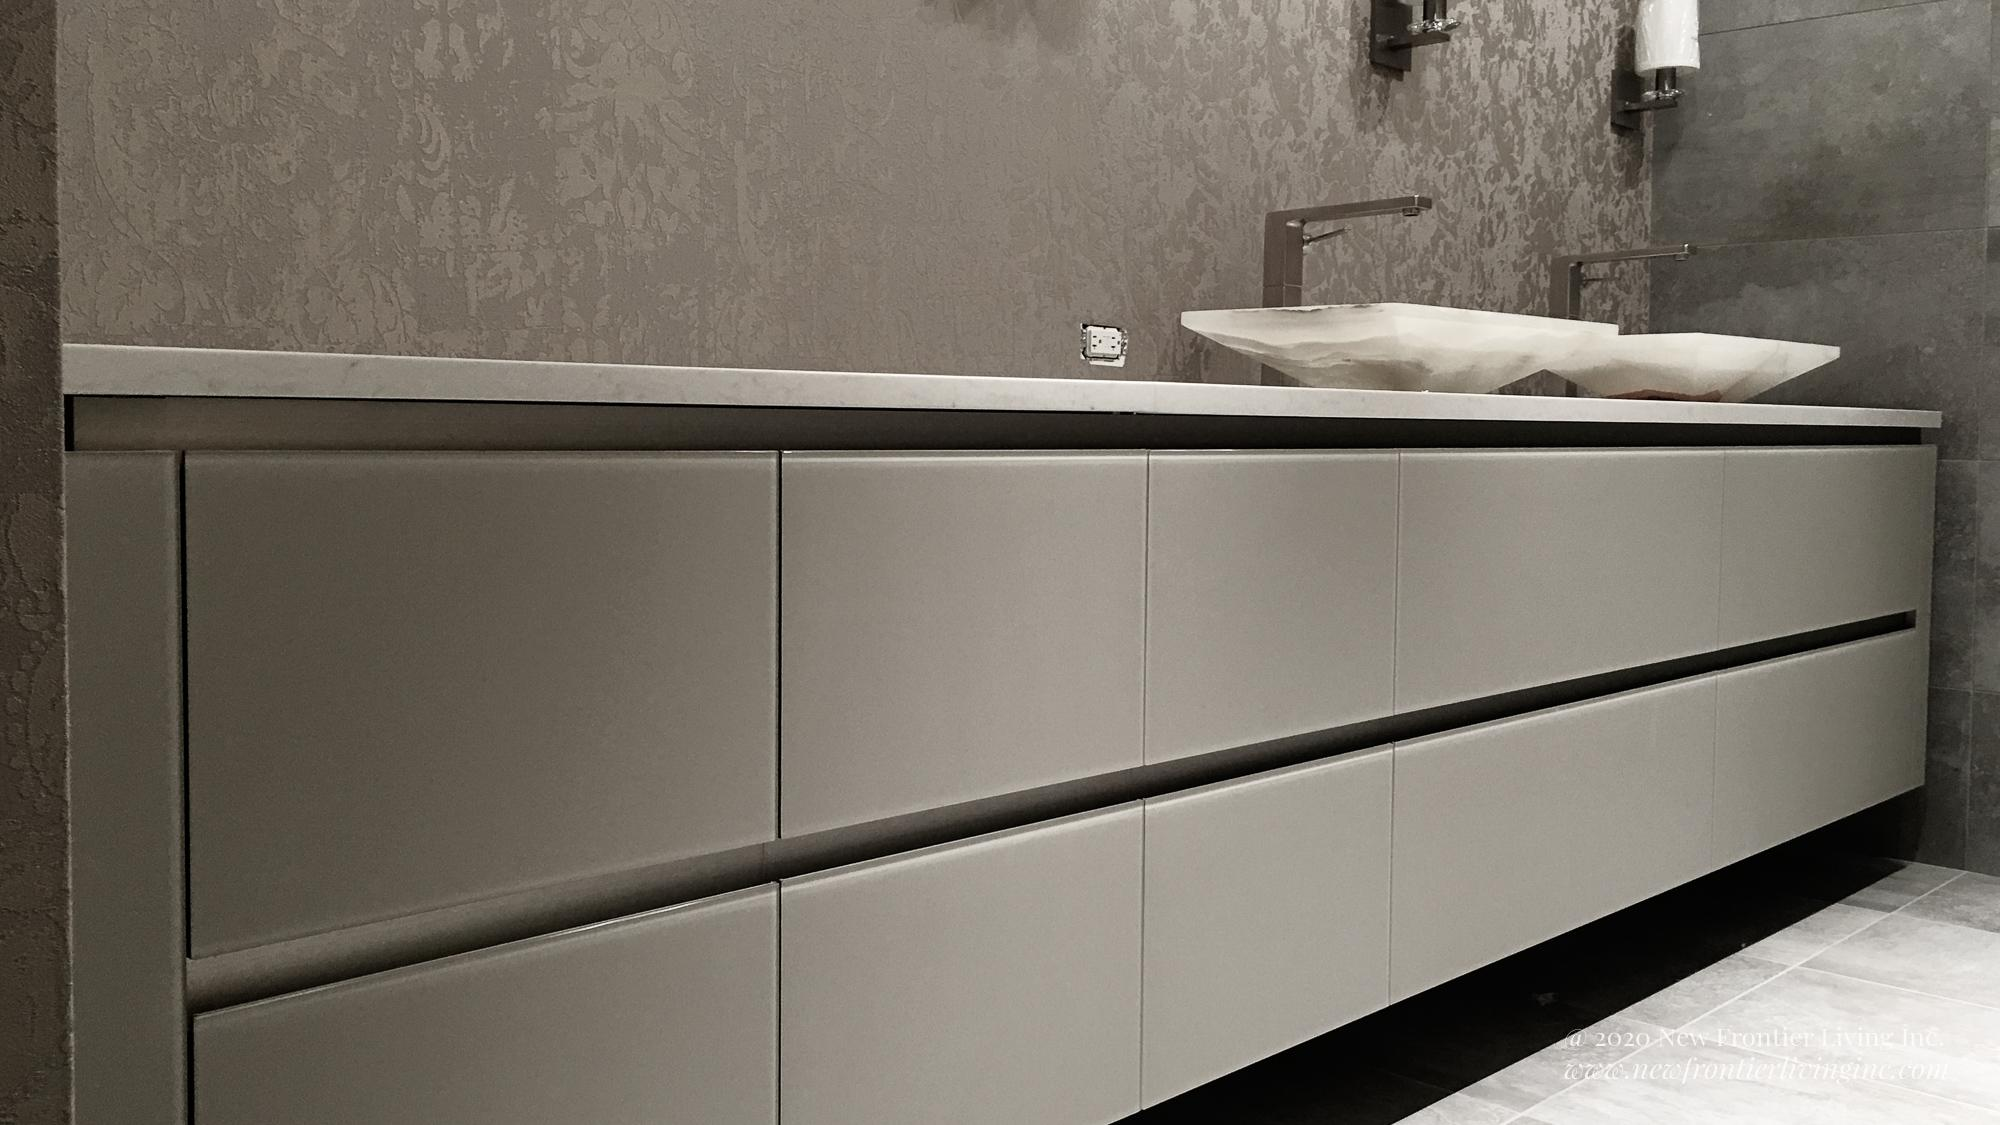 Light brown wall cabinetry without handles and two sinks, four lights above on the wall